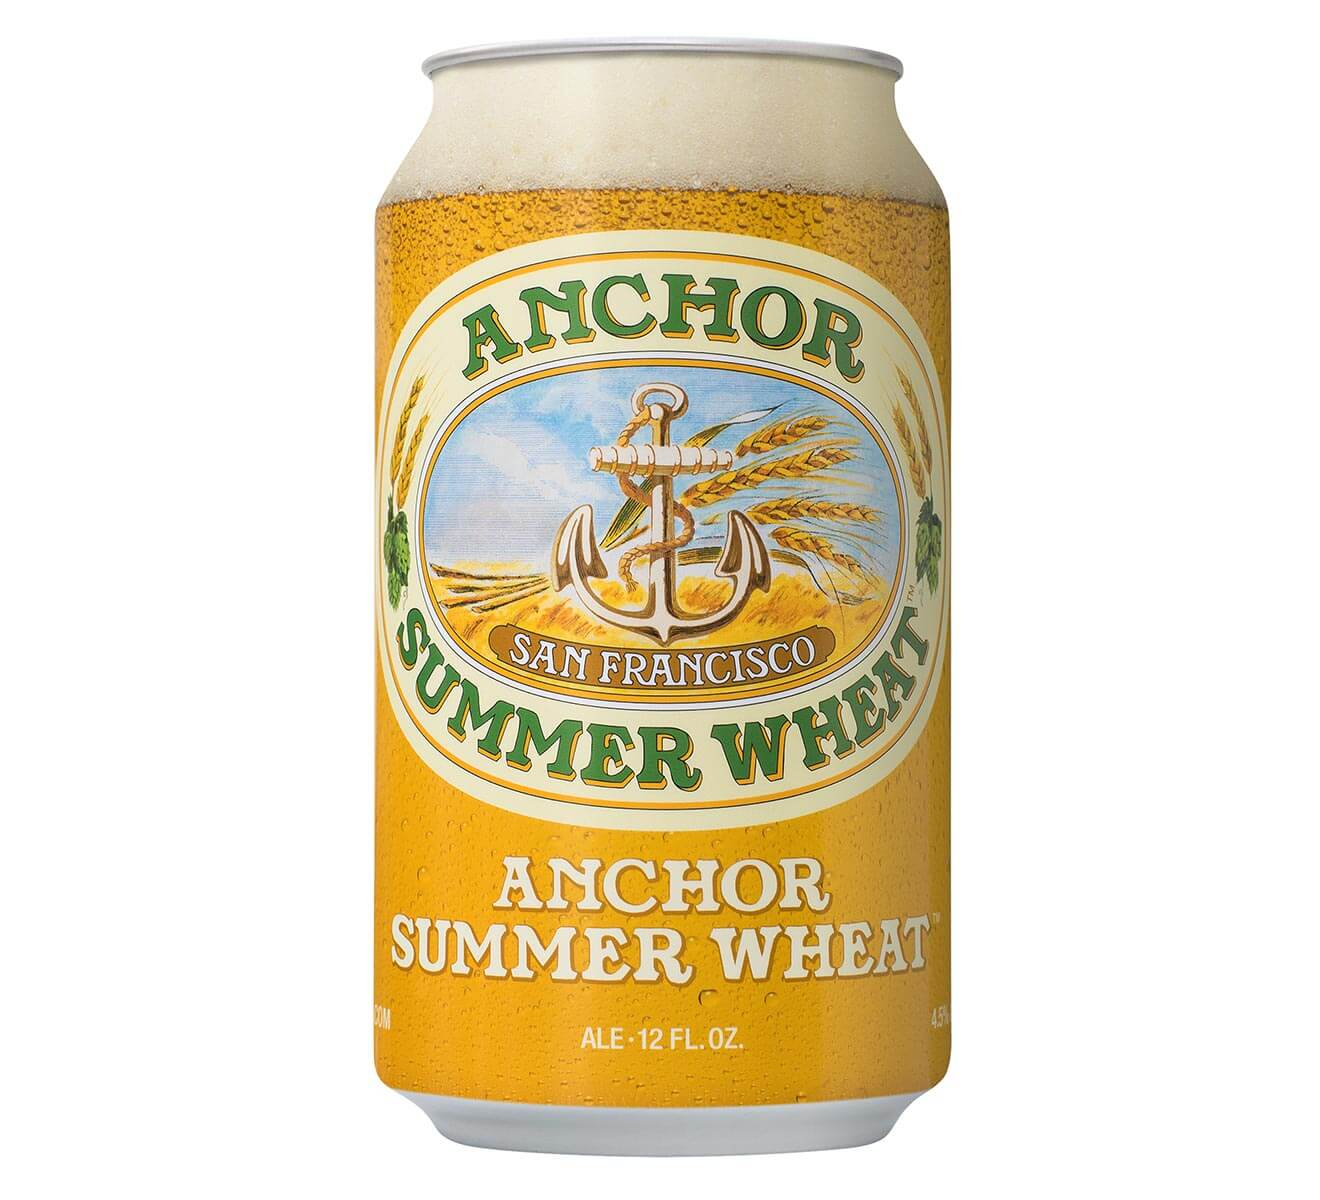 Anchor Summer Wheat in a Can